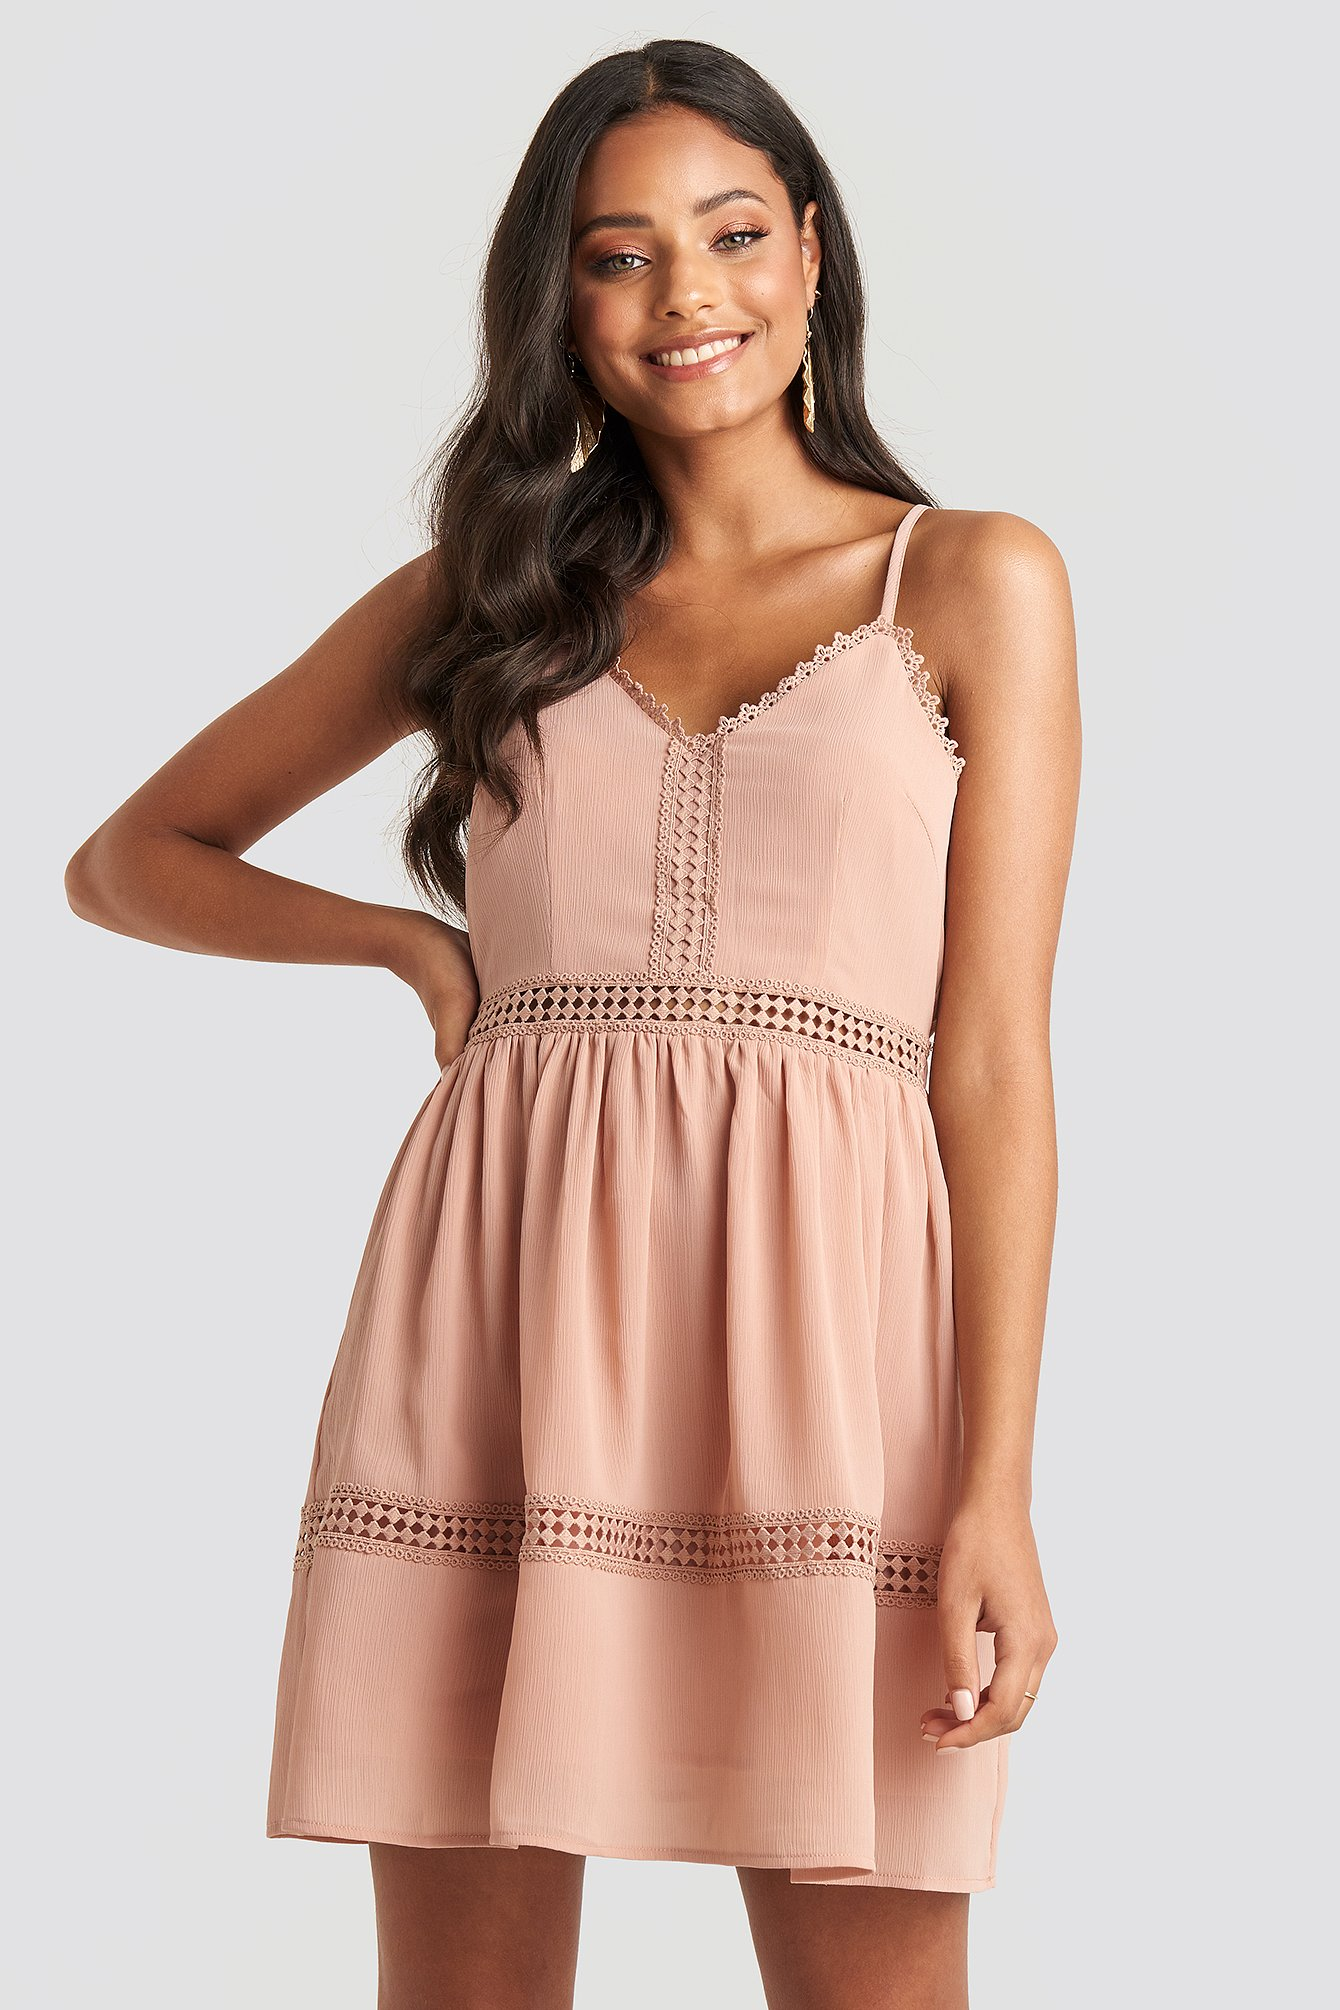 Dusty Pink Lace Insert Flowy Mini Dress